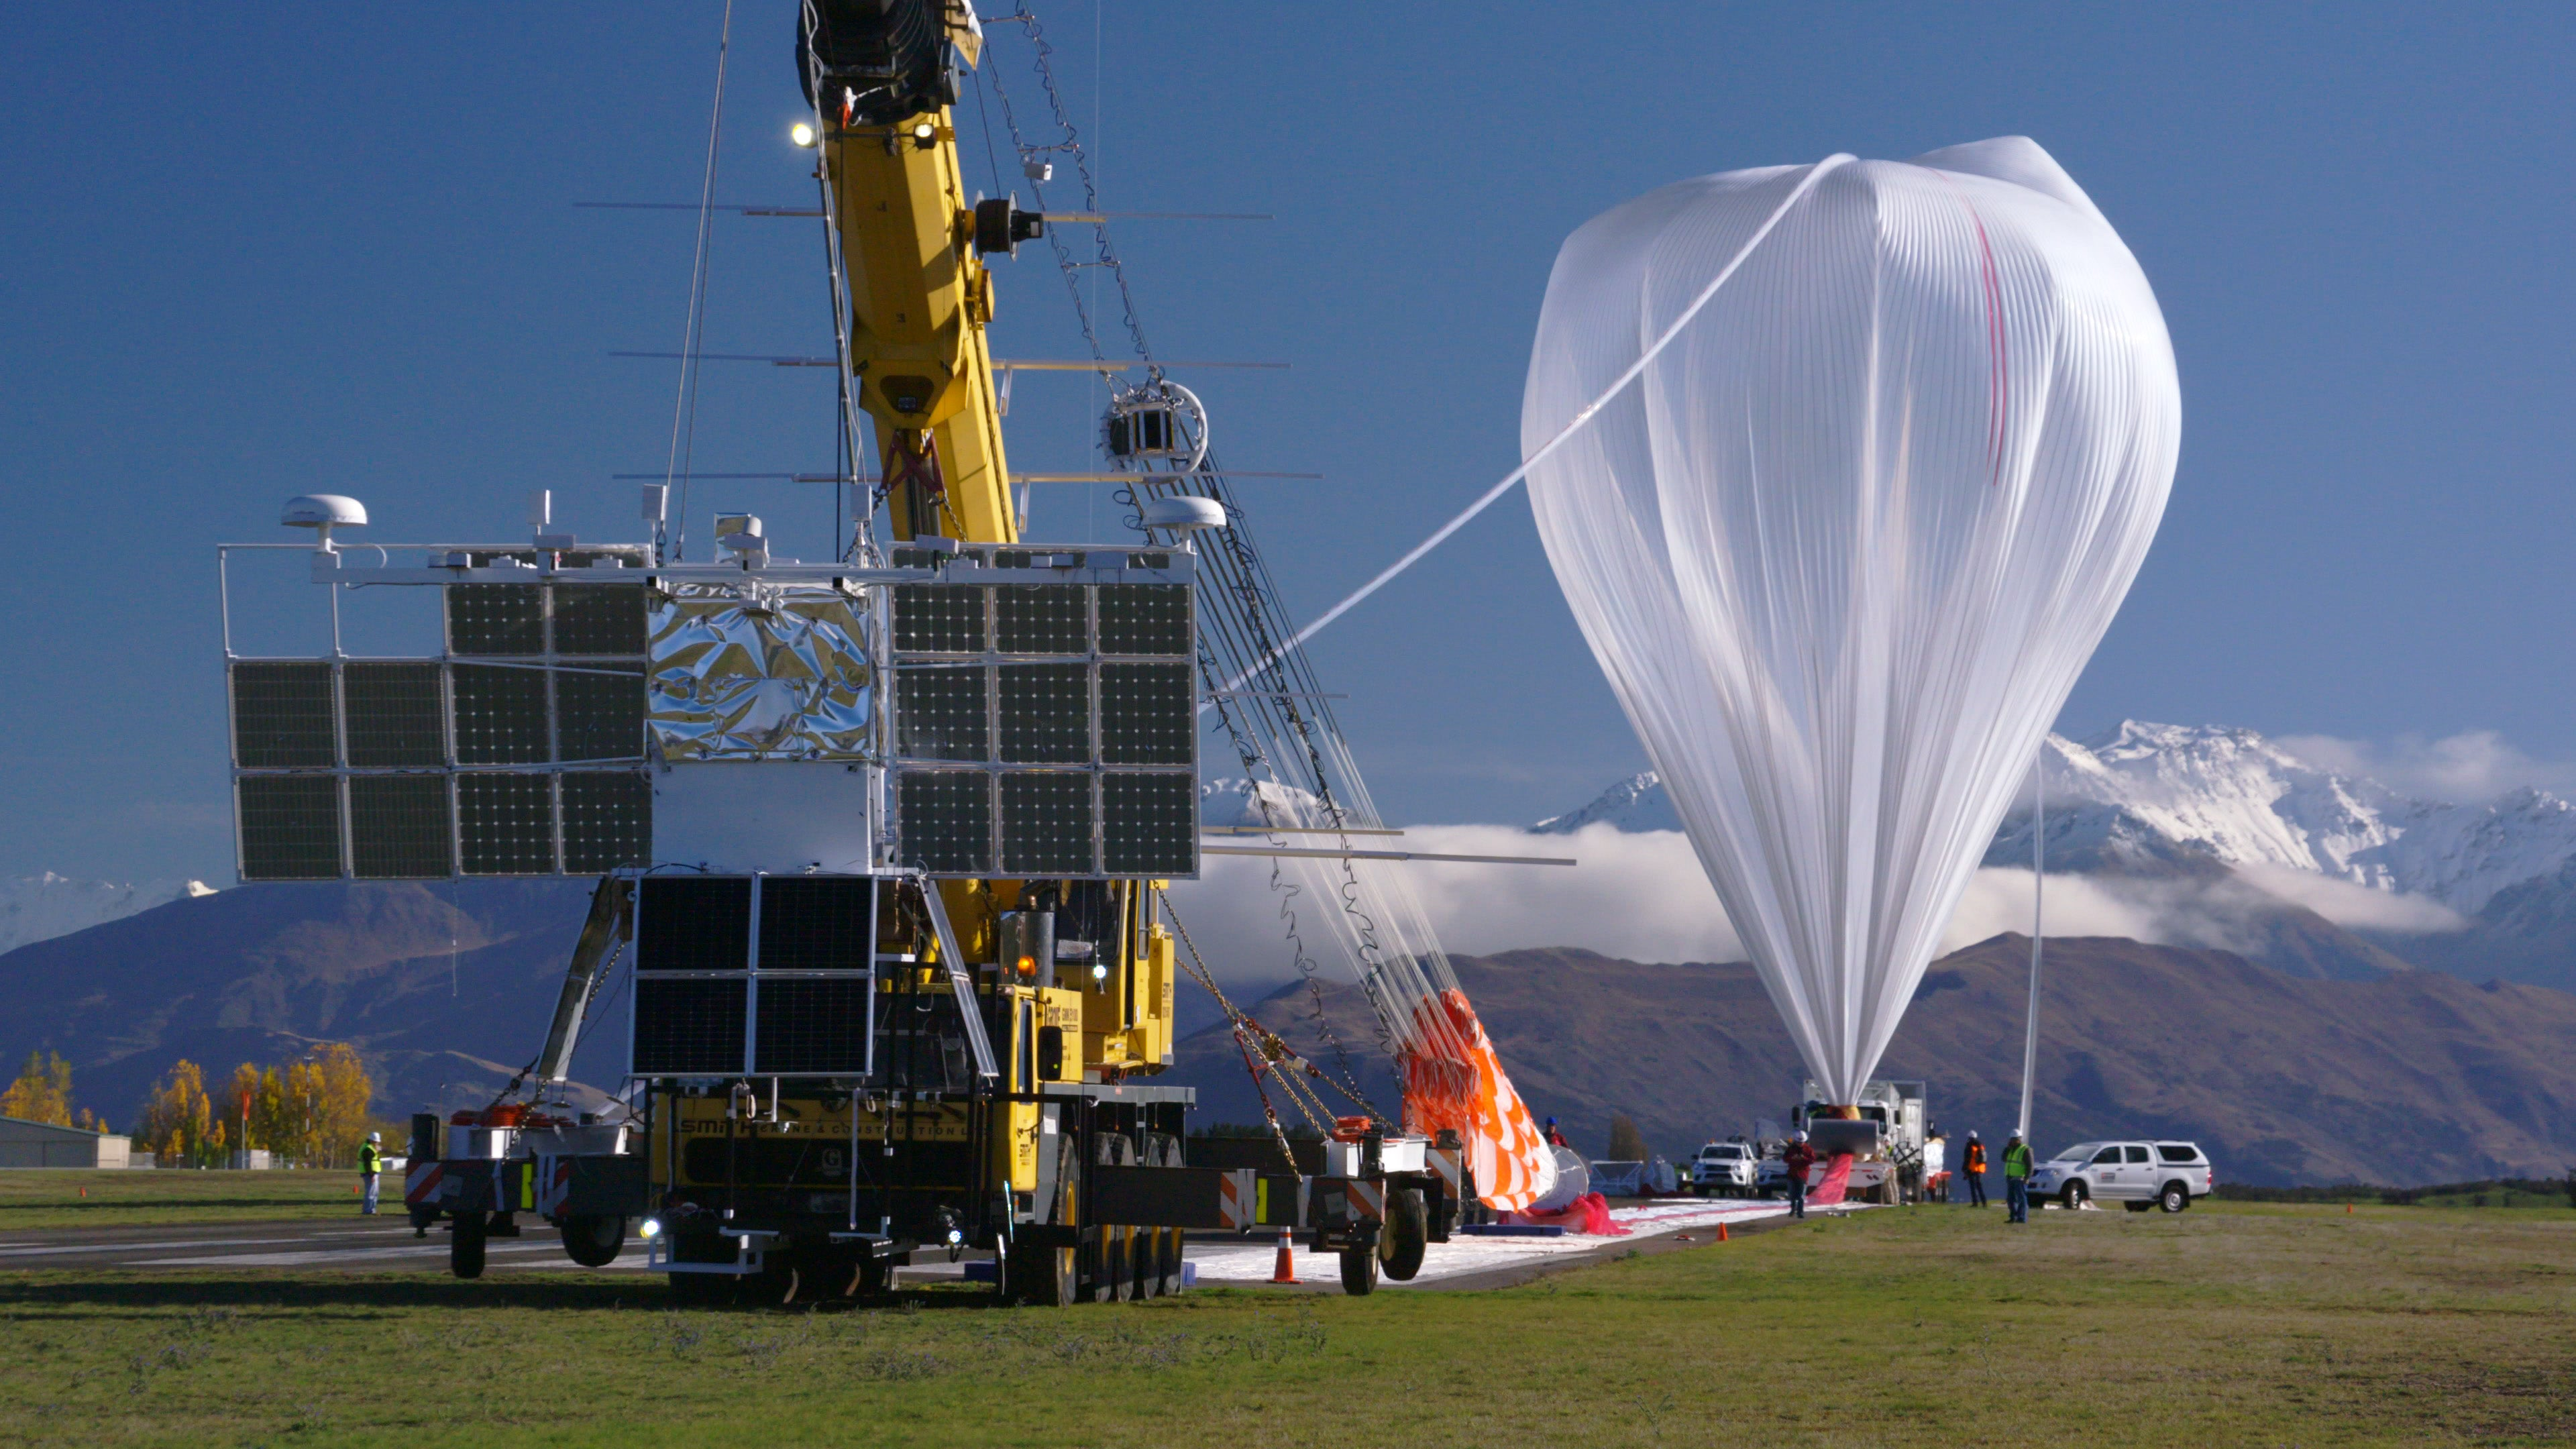 NASA's Giant Super Balloon Mission Is Called Off Early